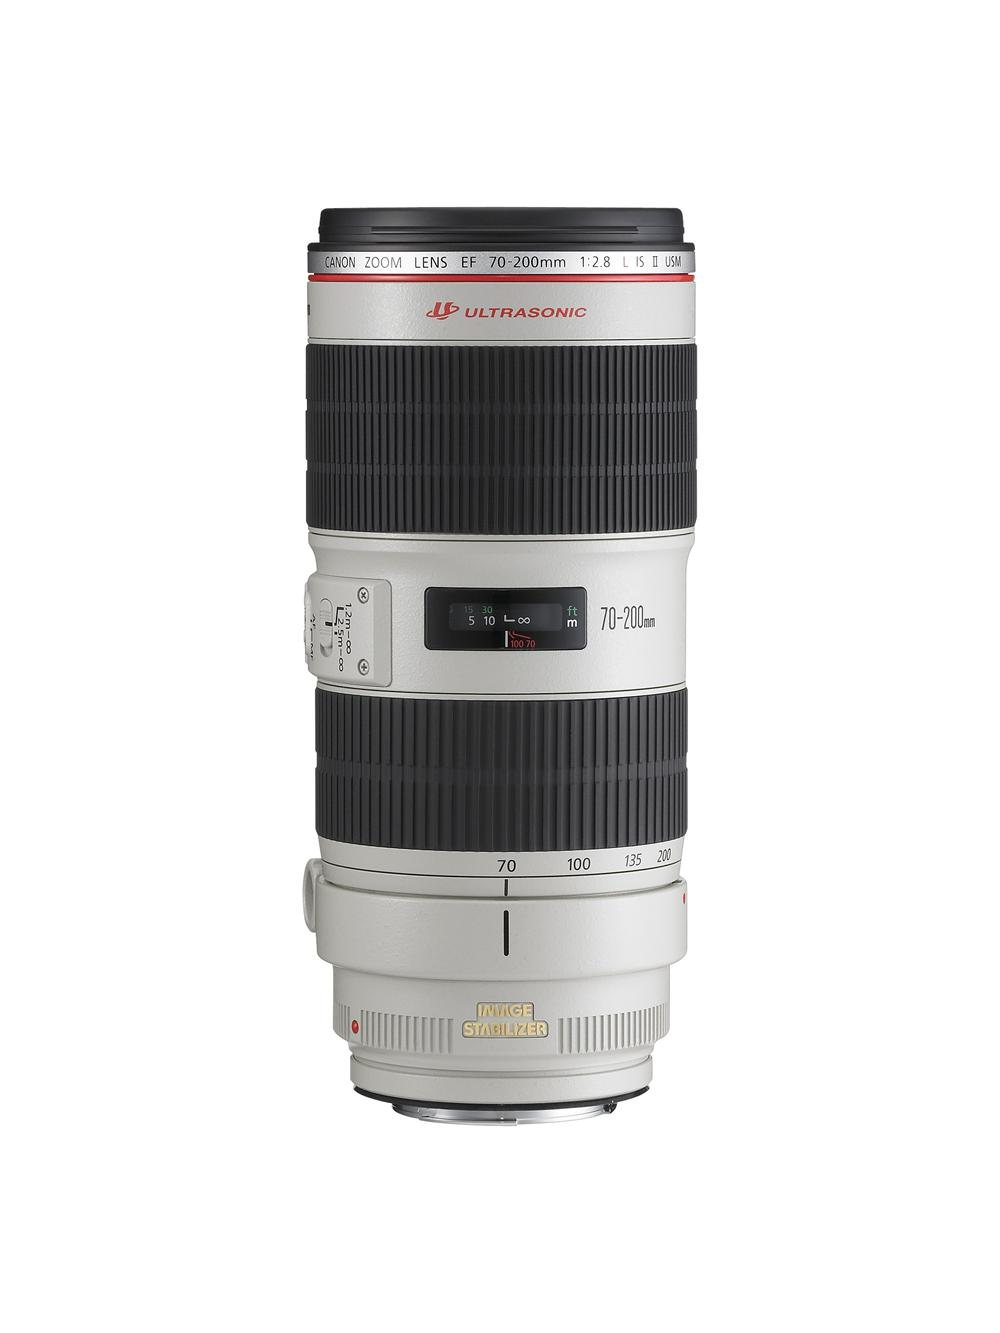 6 ZOOM LENS EF 70-200mm f2.8 L IS II USM FRT. Canon ef 70-200mm f/2,8L IS II USM